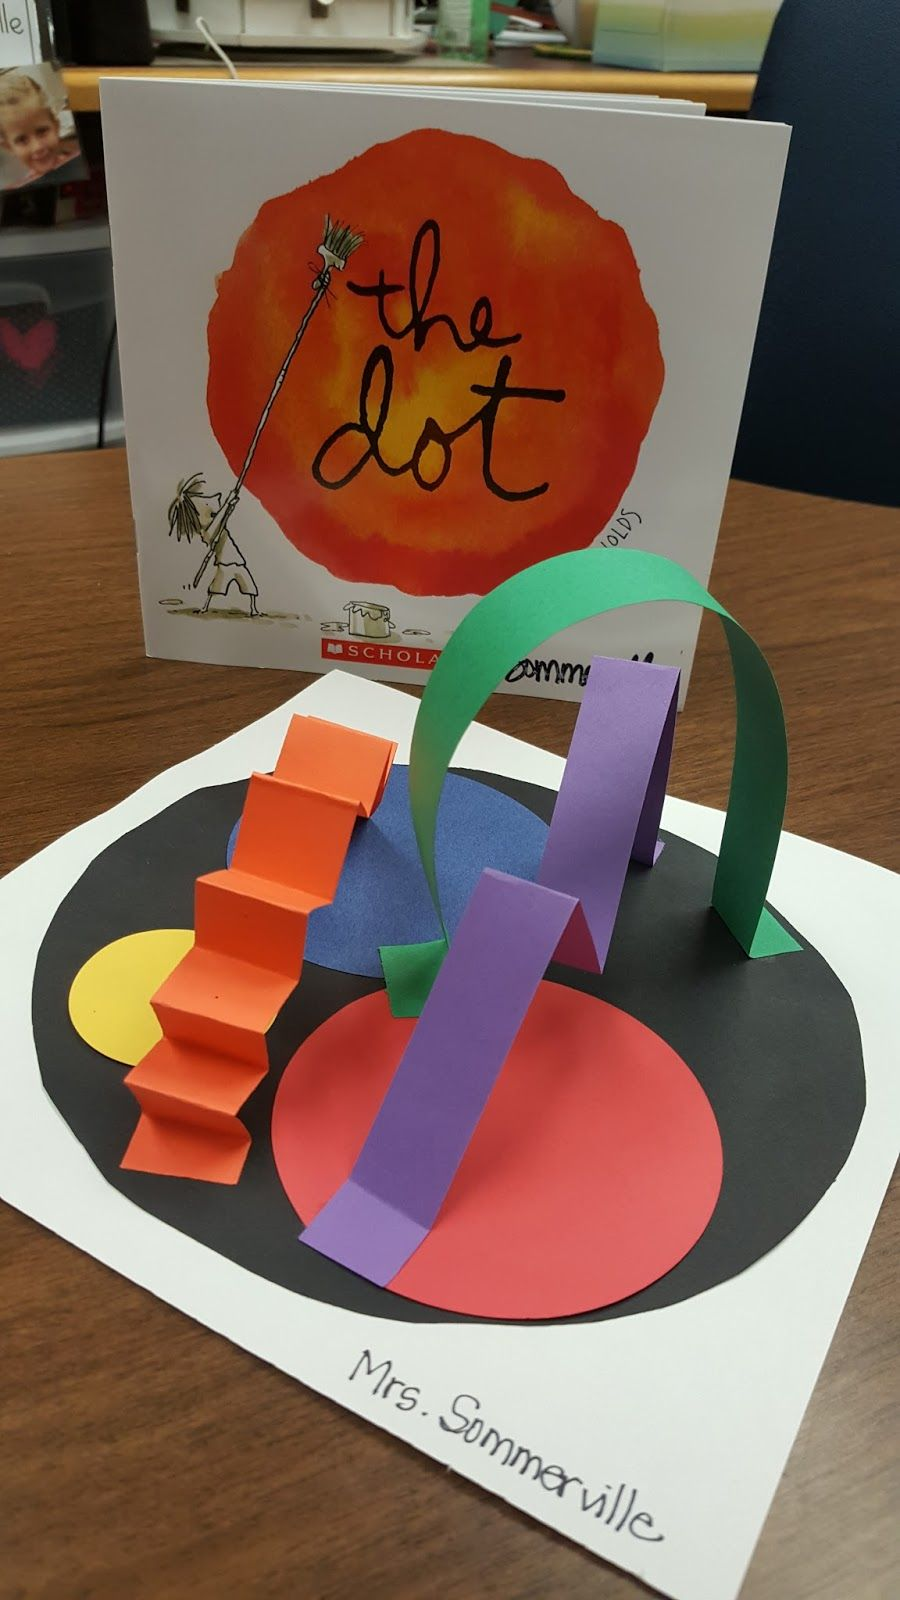 Thanks to the alignment of our calendar and curriculum map this year, we're celebrating  DOT DAY at the end of our